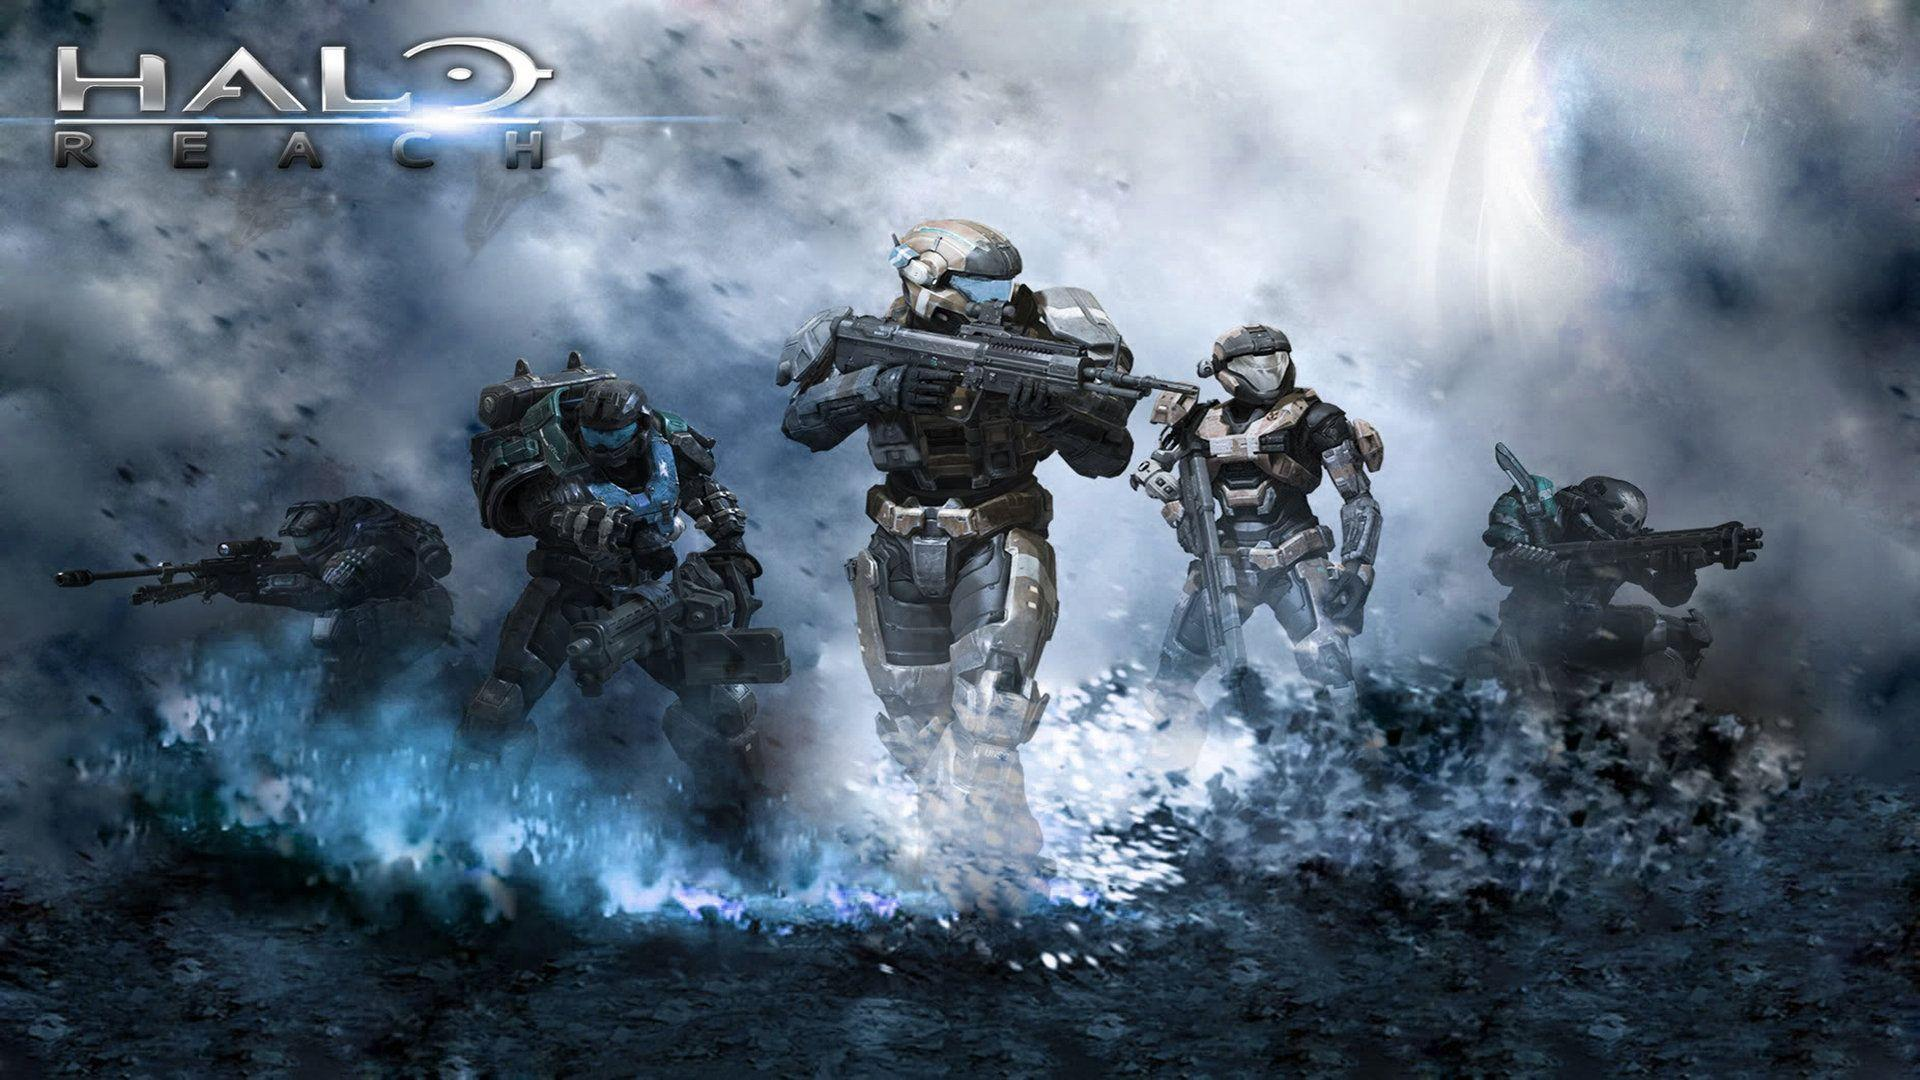 Halo 4 2012 4K HD Desktop